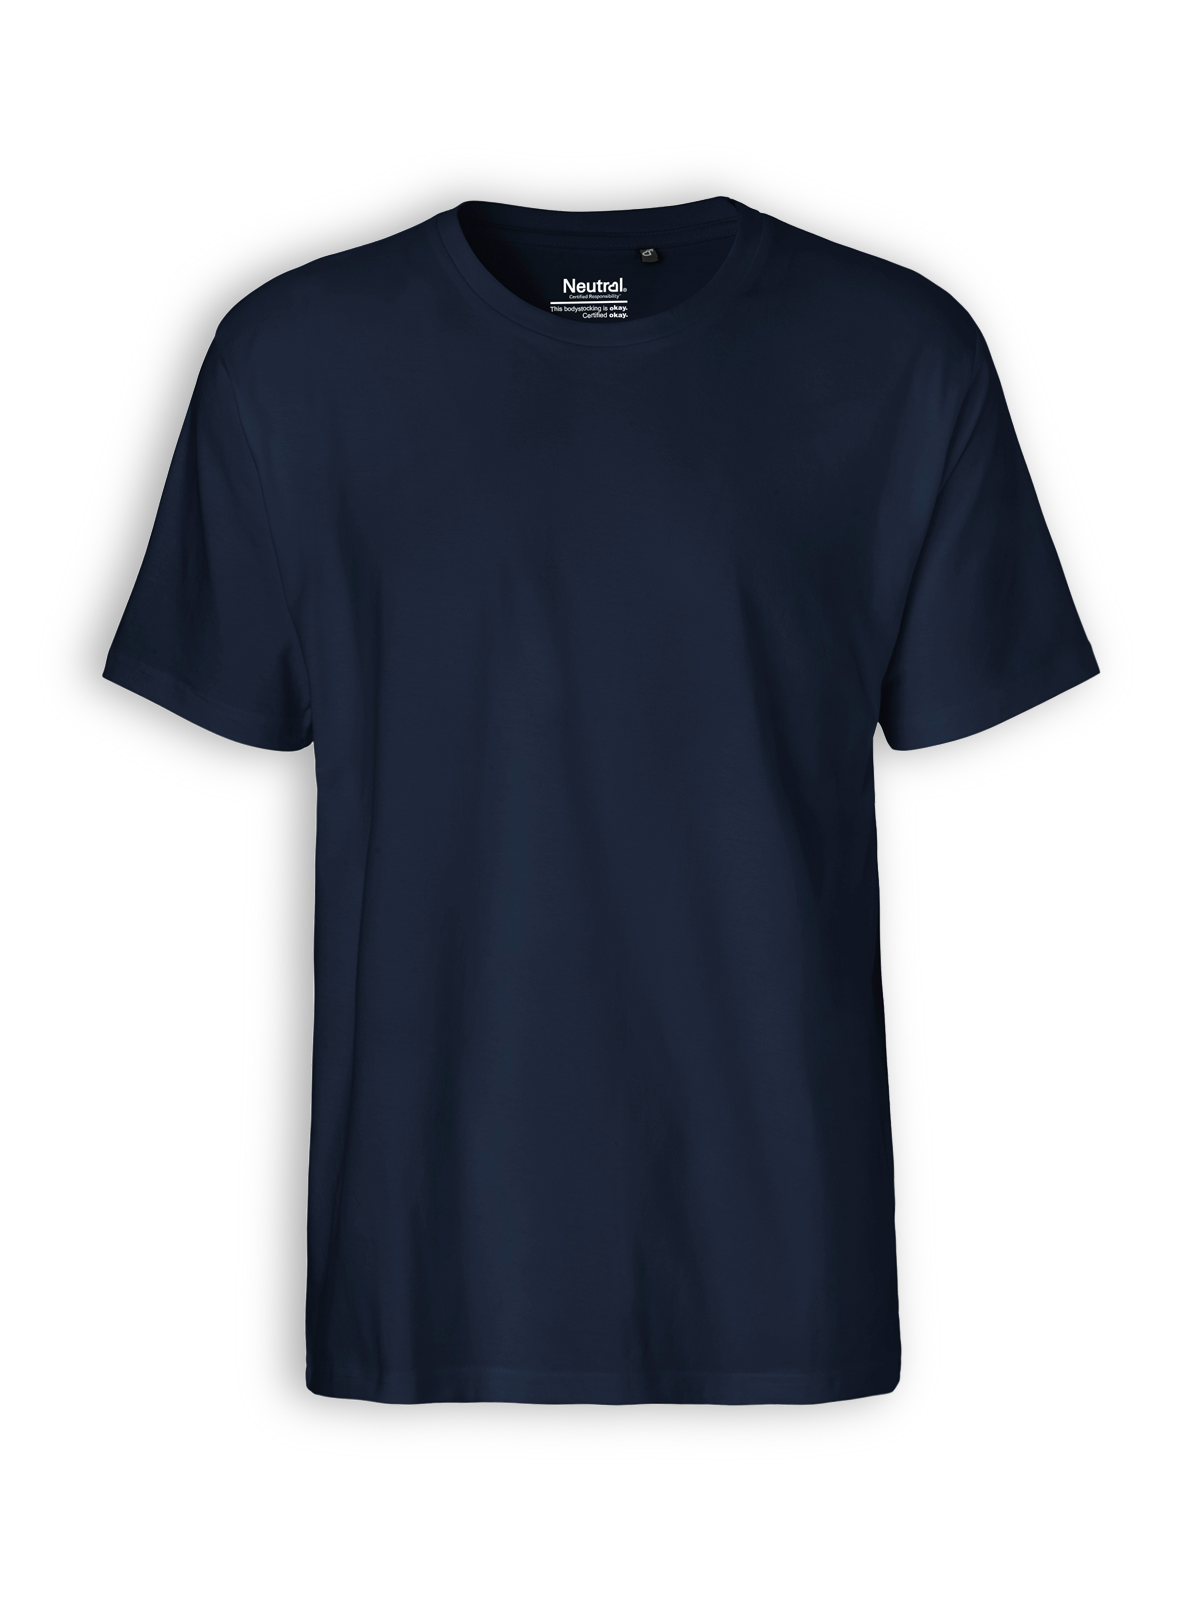 Neutral classic T-shirt in navy. Zoom